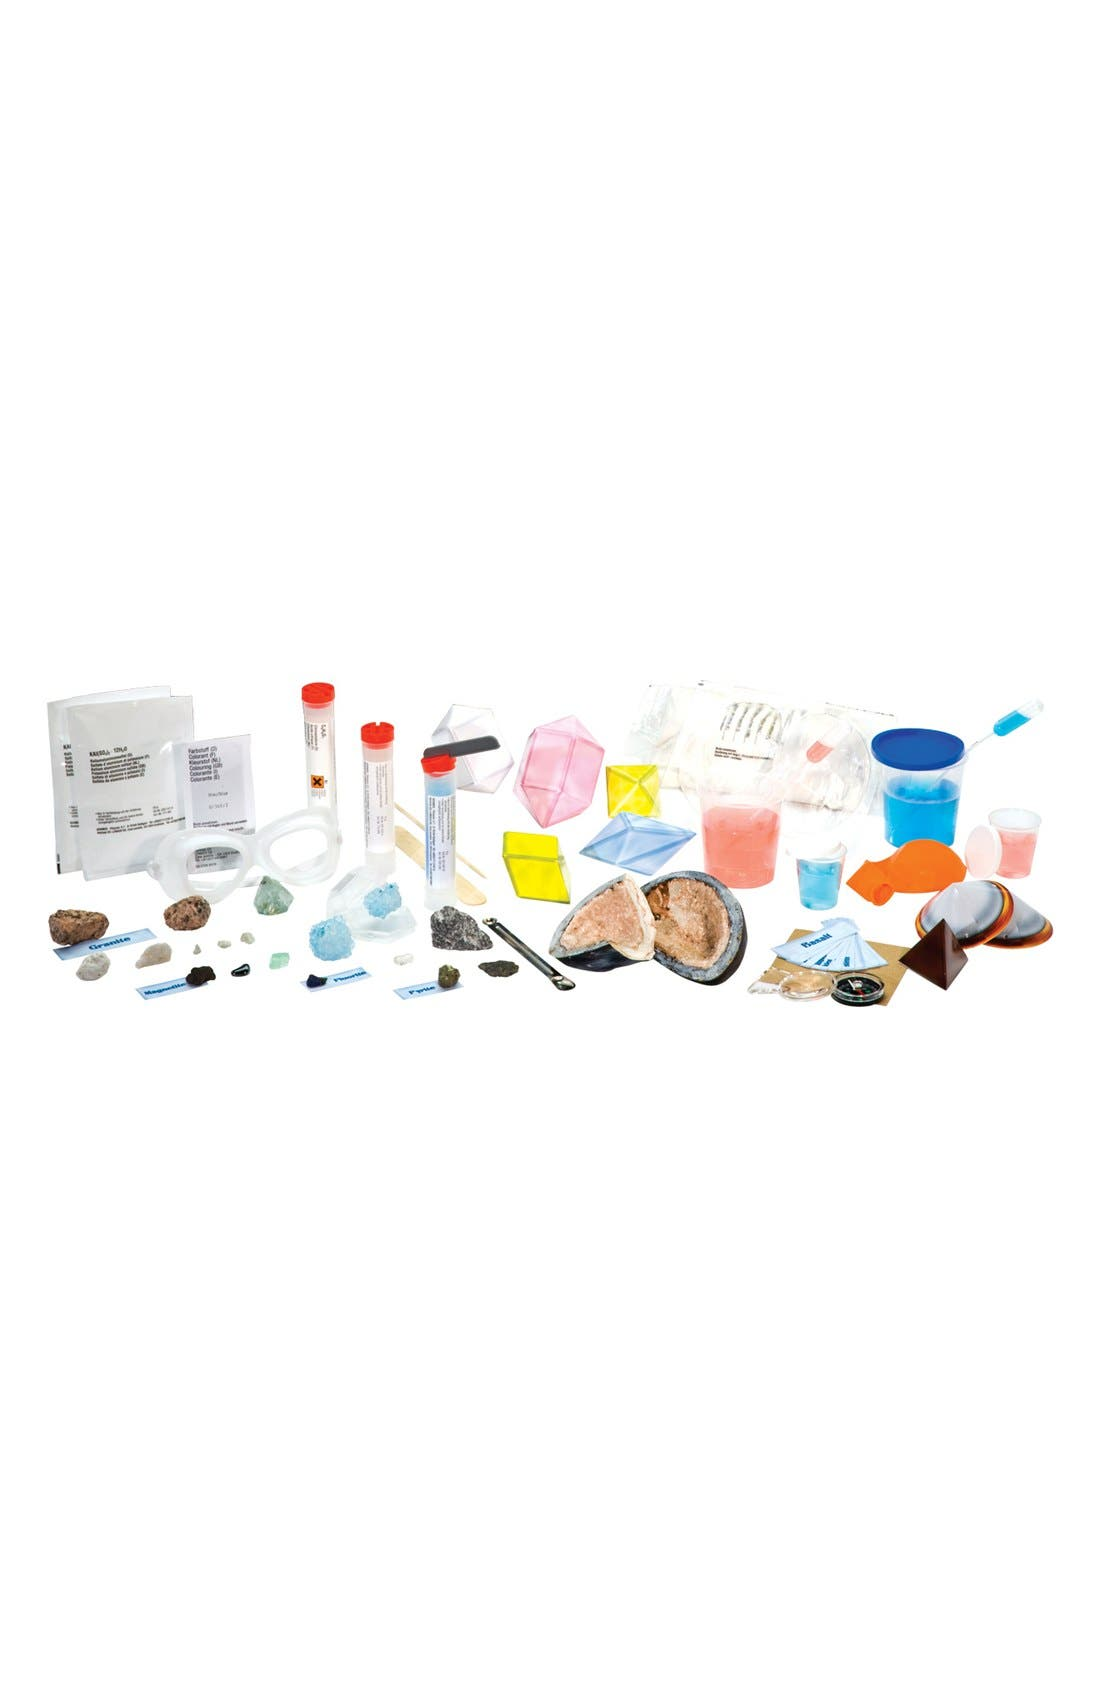 Crystal, Rocks & Minerals Experiment Kit,                             Alternate thumbnail 3, color,                             000